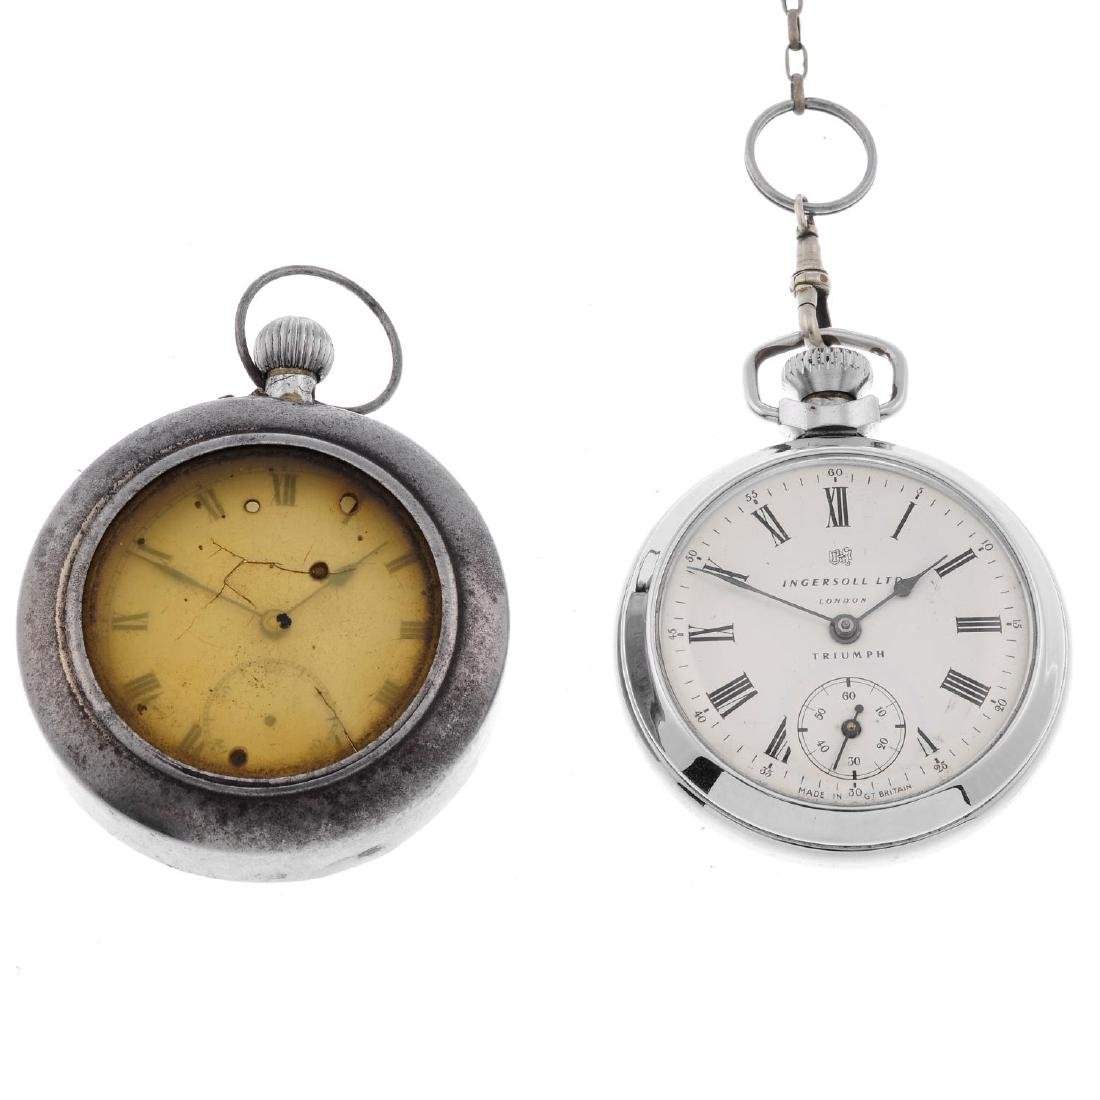 A chrome plated open face pocket watch by Ingersoll.